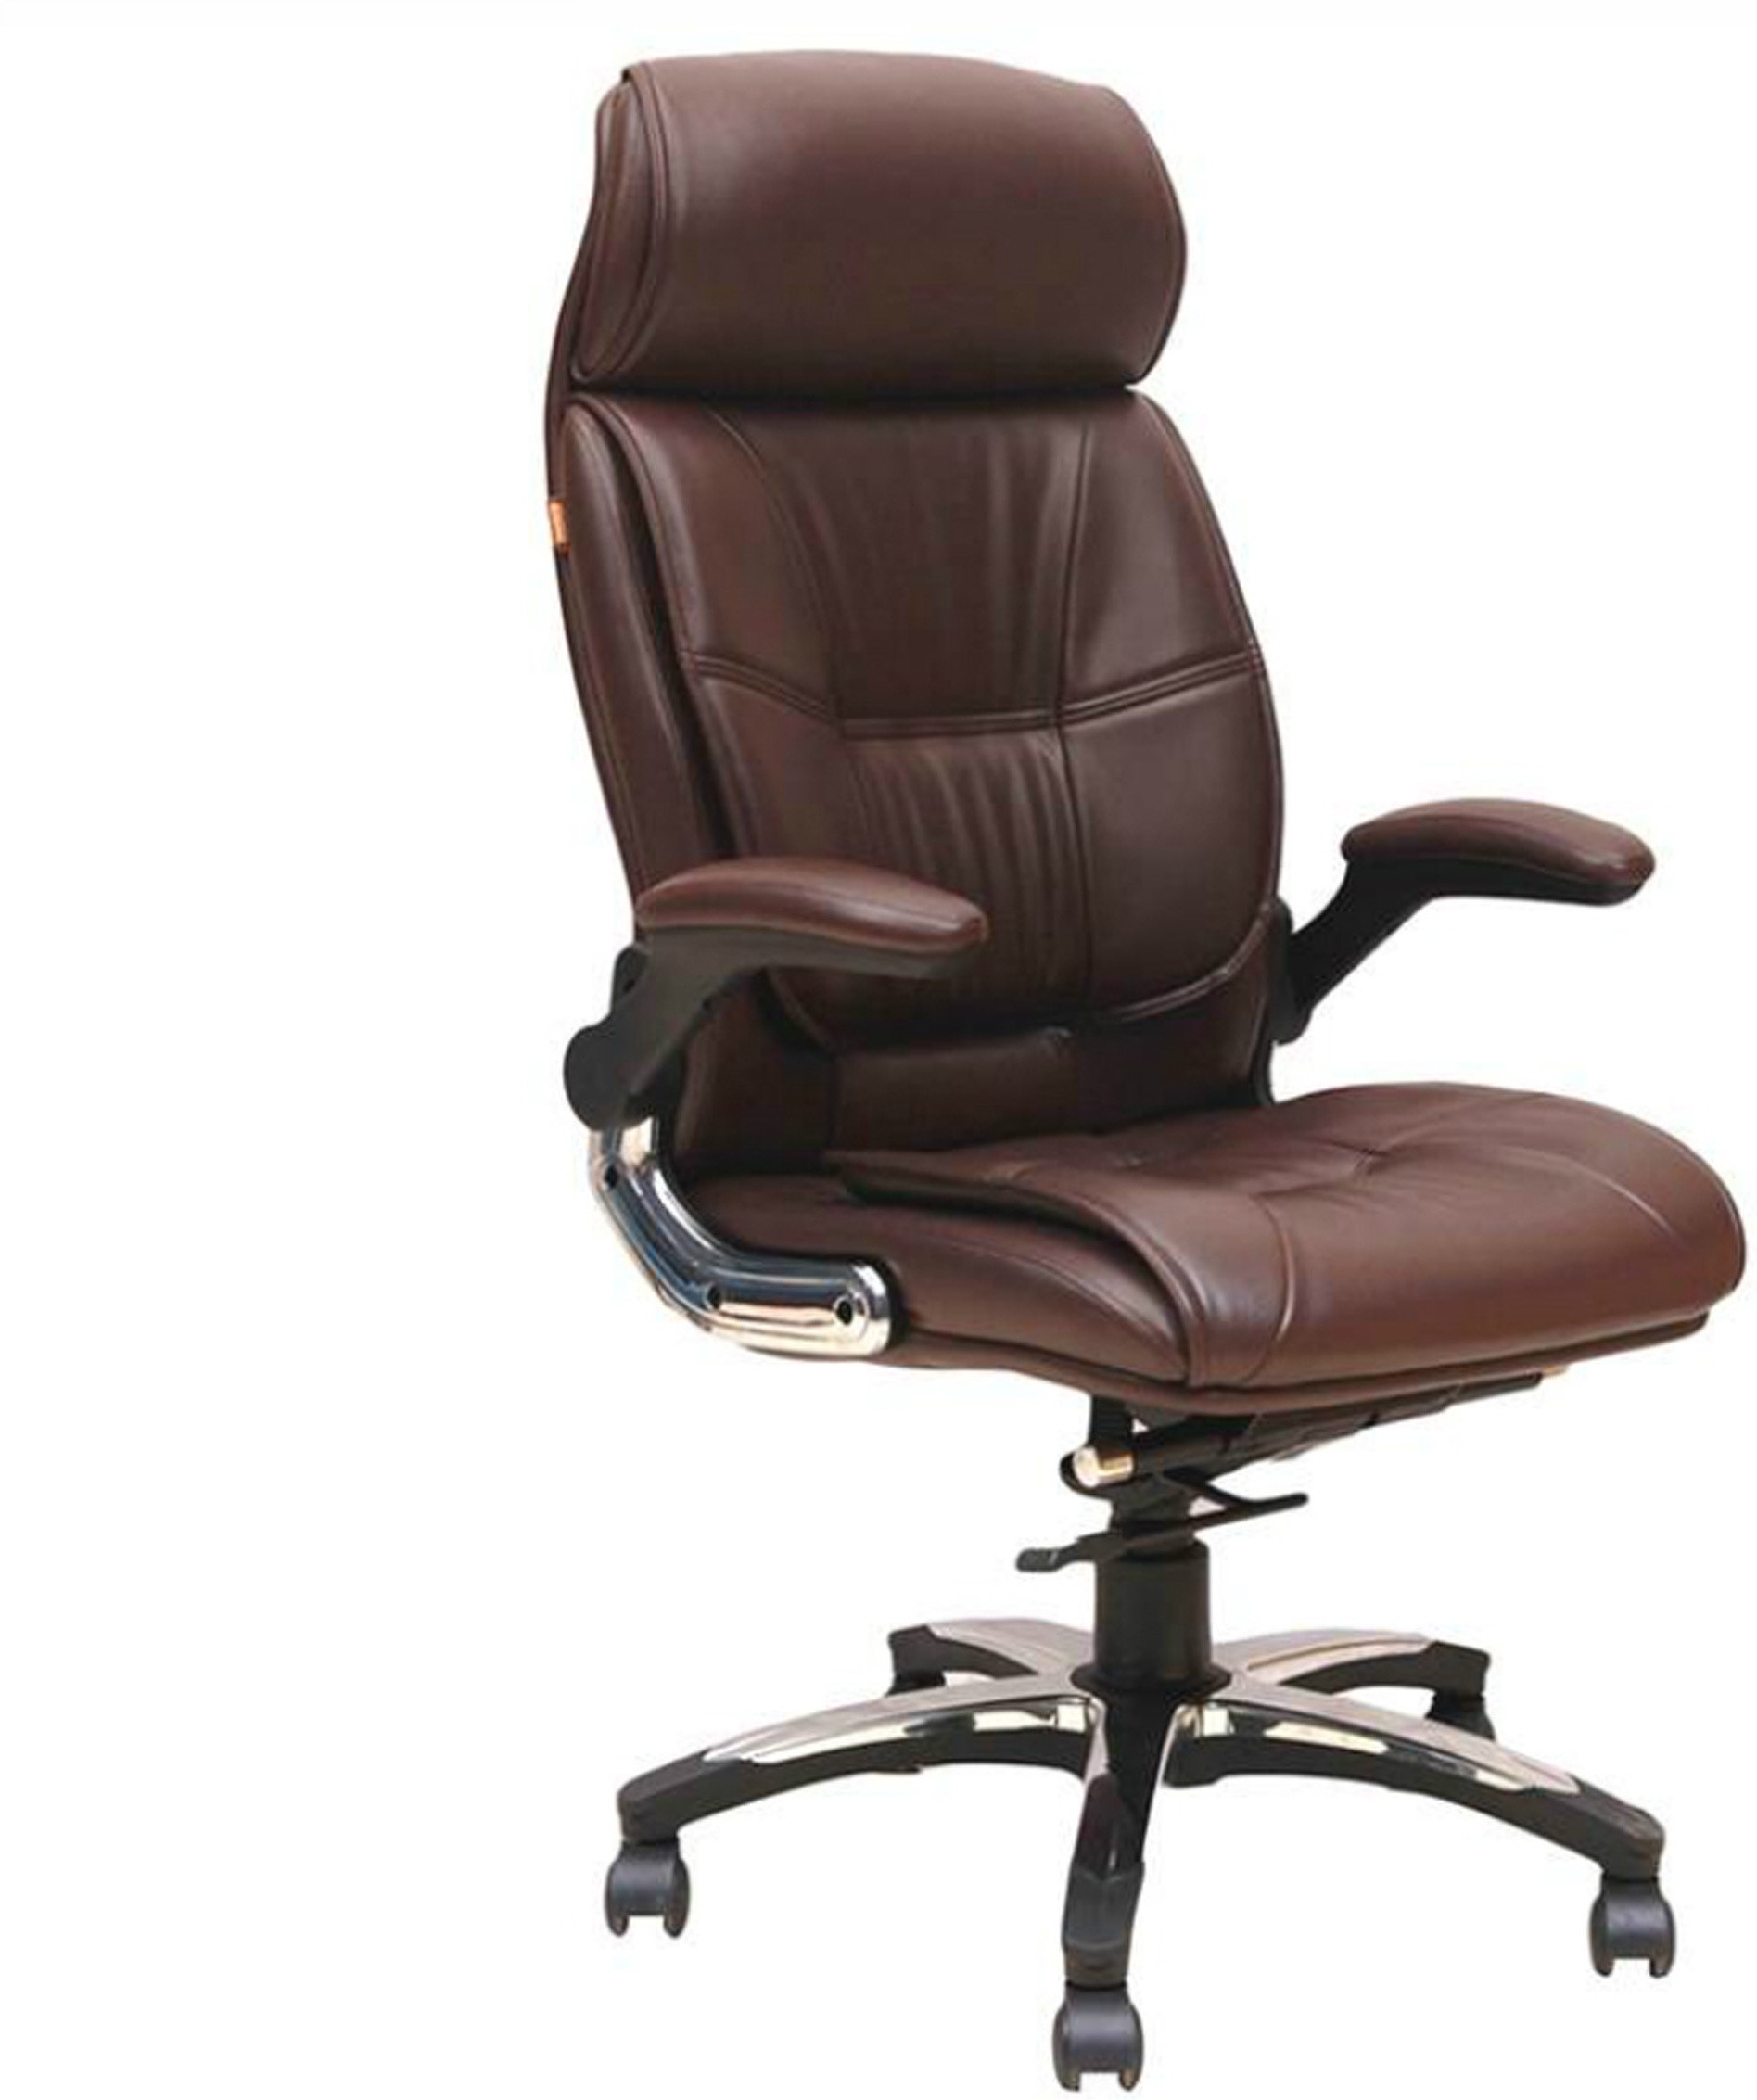 View Woodstock India Lincoln Fabric Office Chair(Brown, Brown) Furniture (Woodstock India)